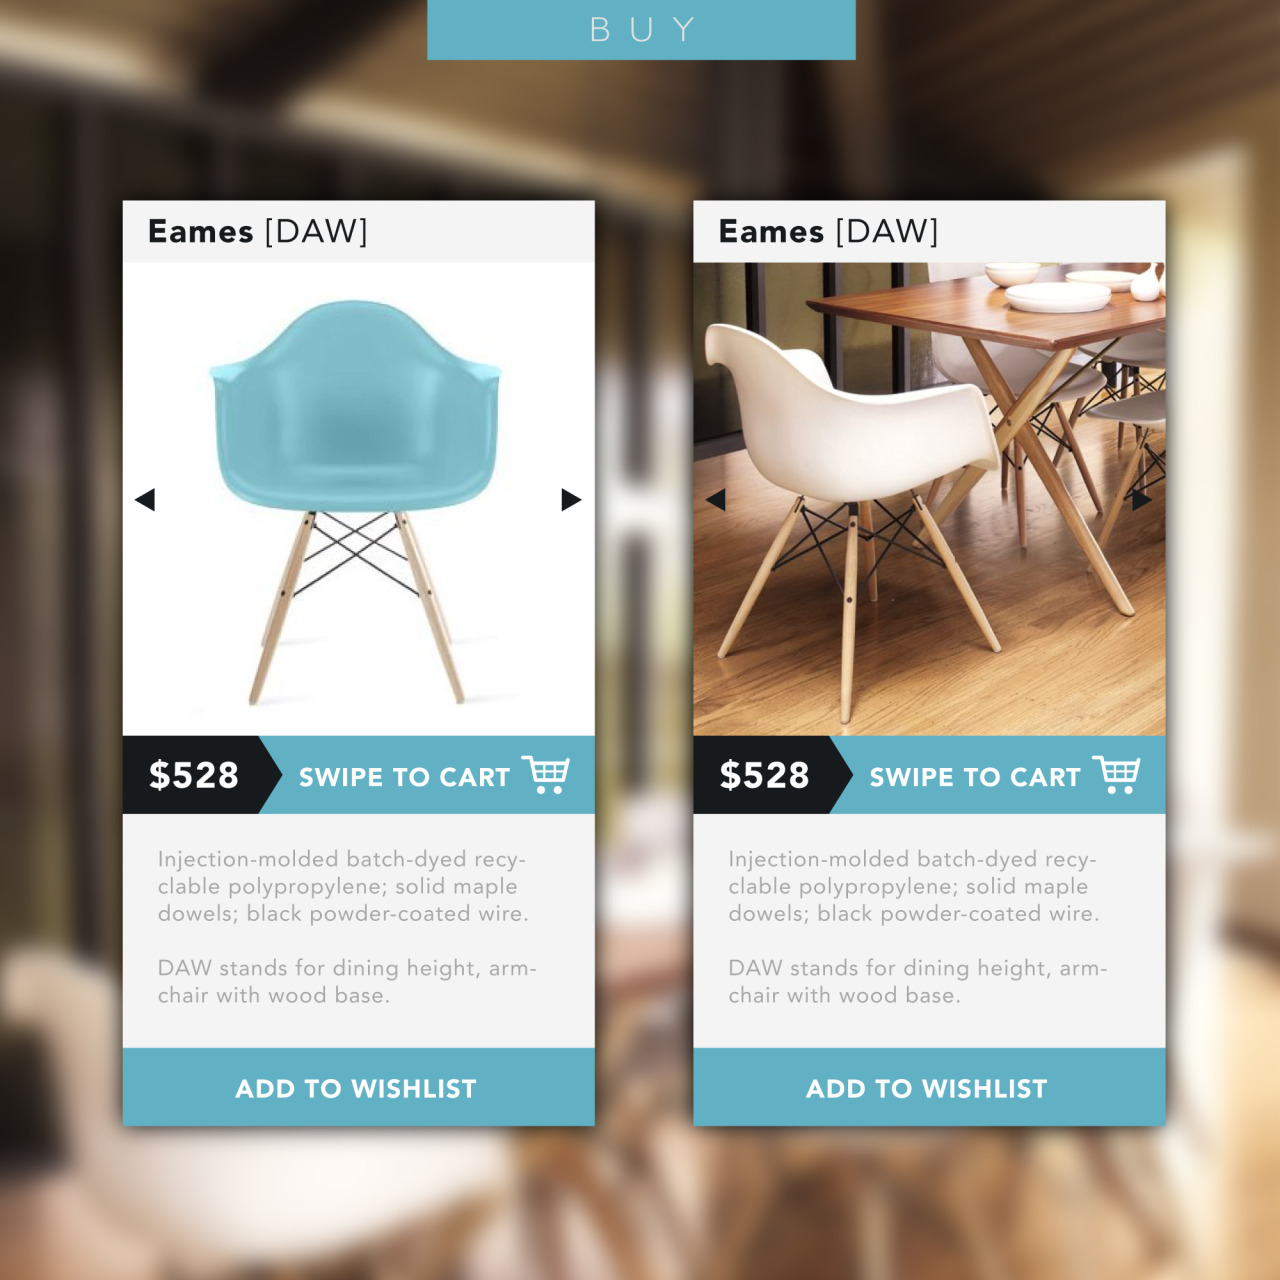 Designing small, clean interfaces. This one is for buying chairs.